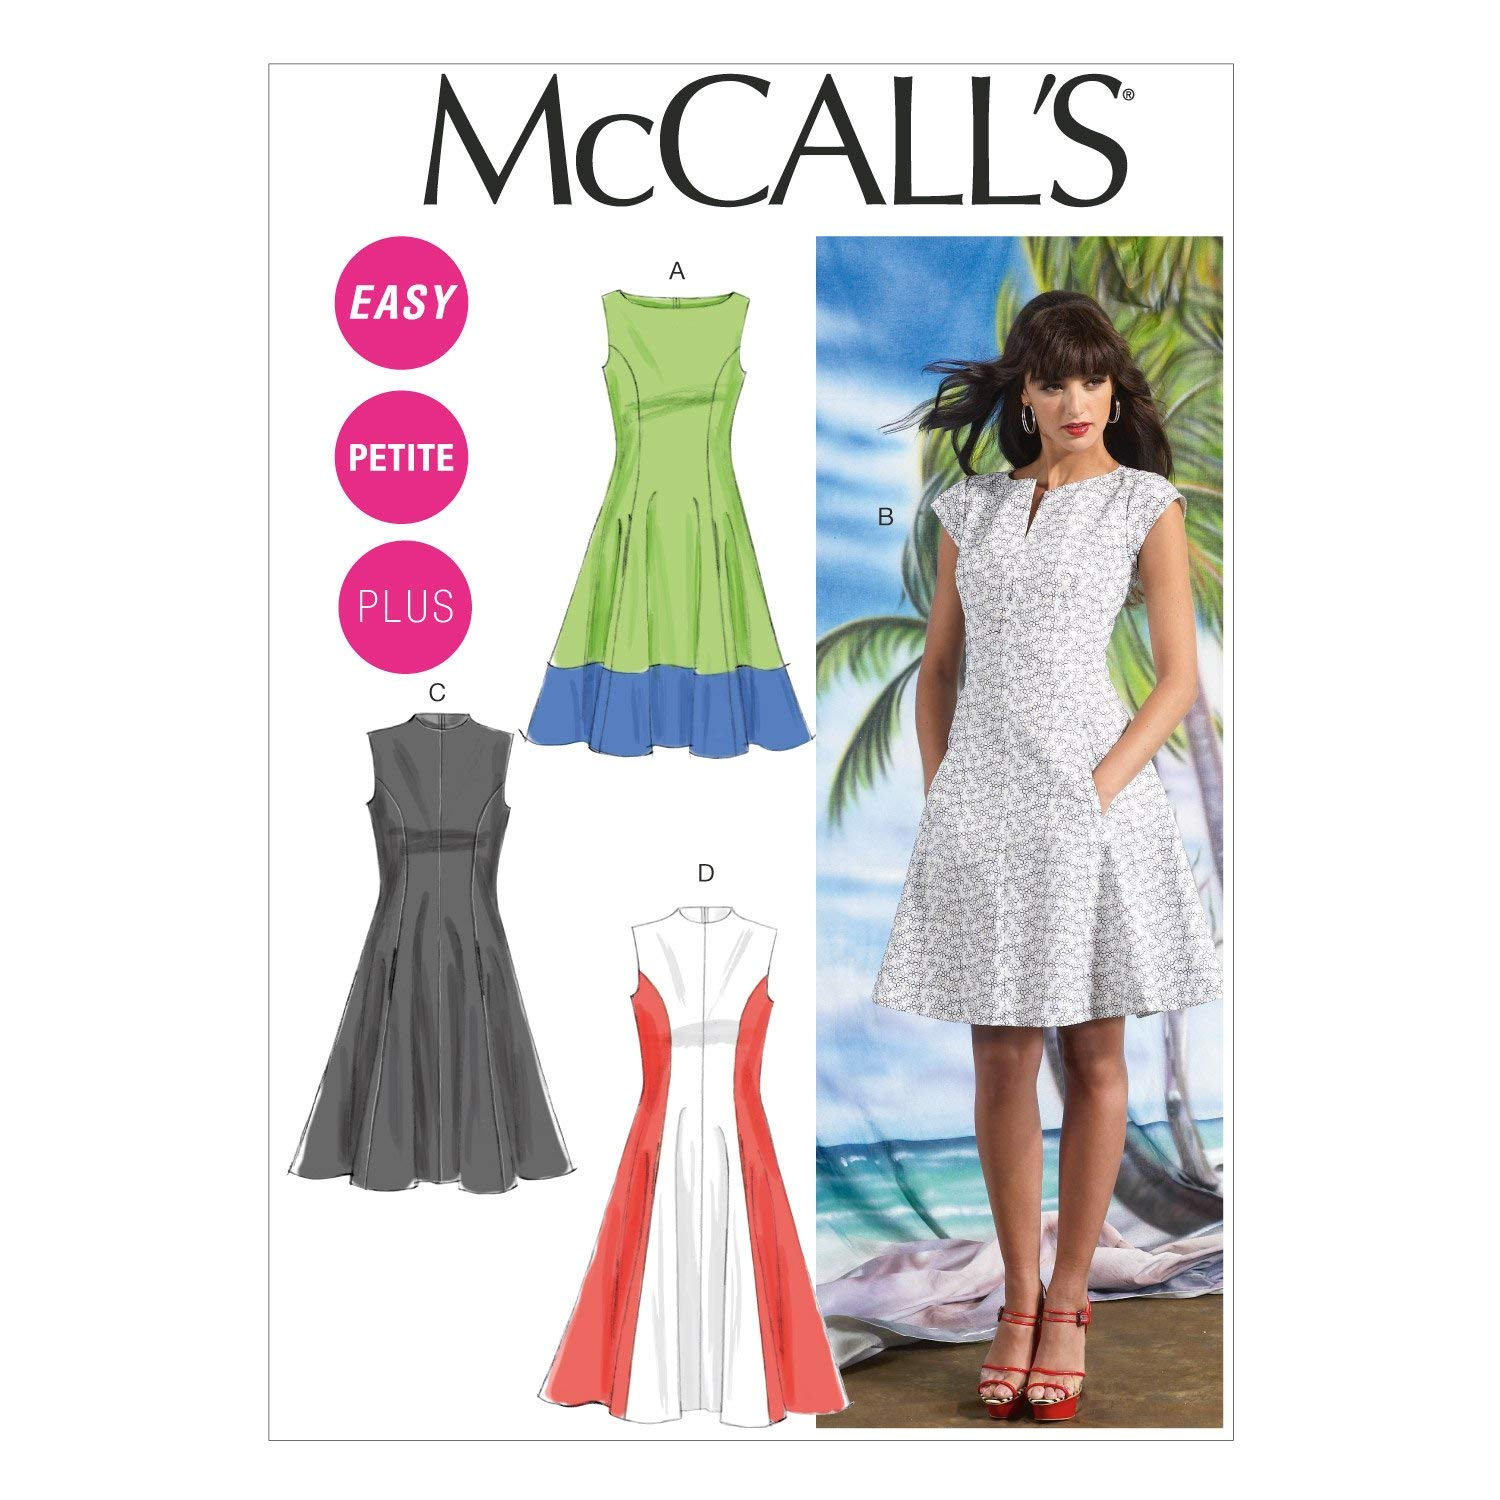 McCalls Patterns M7349 Misses//Miss Petite Sleeveless or Raglan Sleeve Fit and Flare Dresses 6-8-10-12-14 Size A5